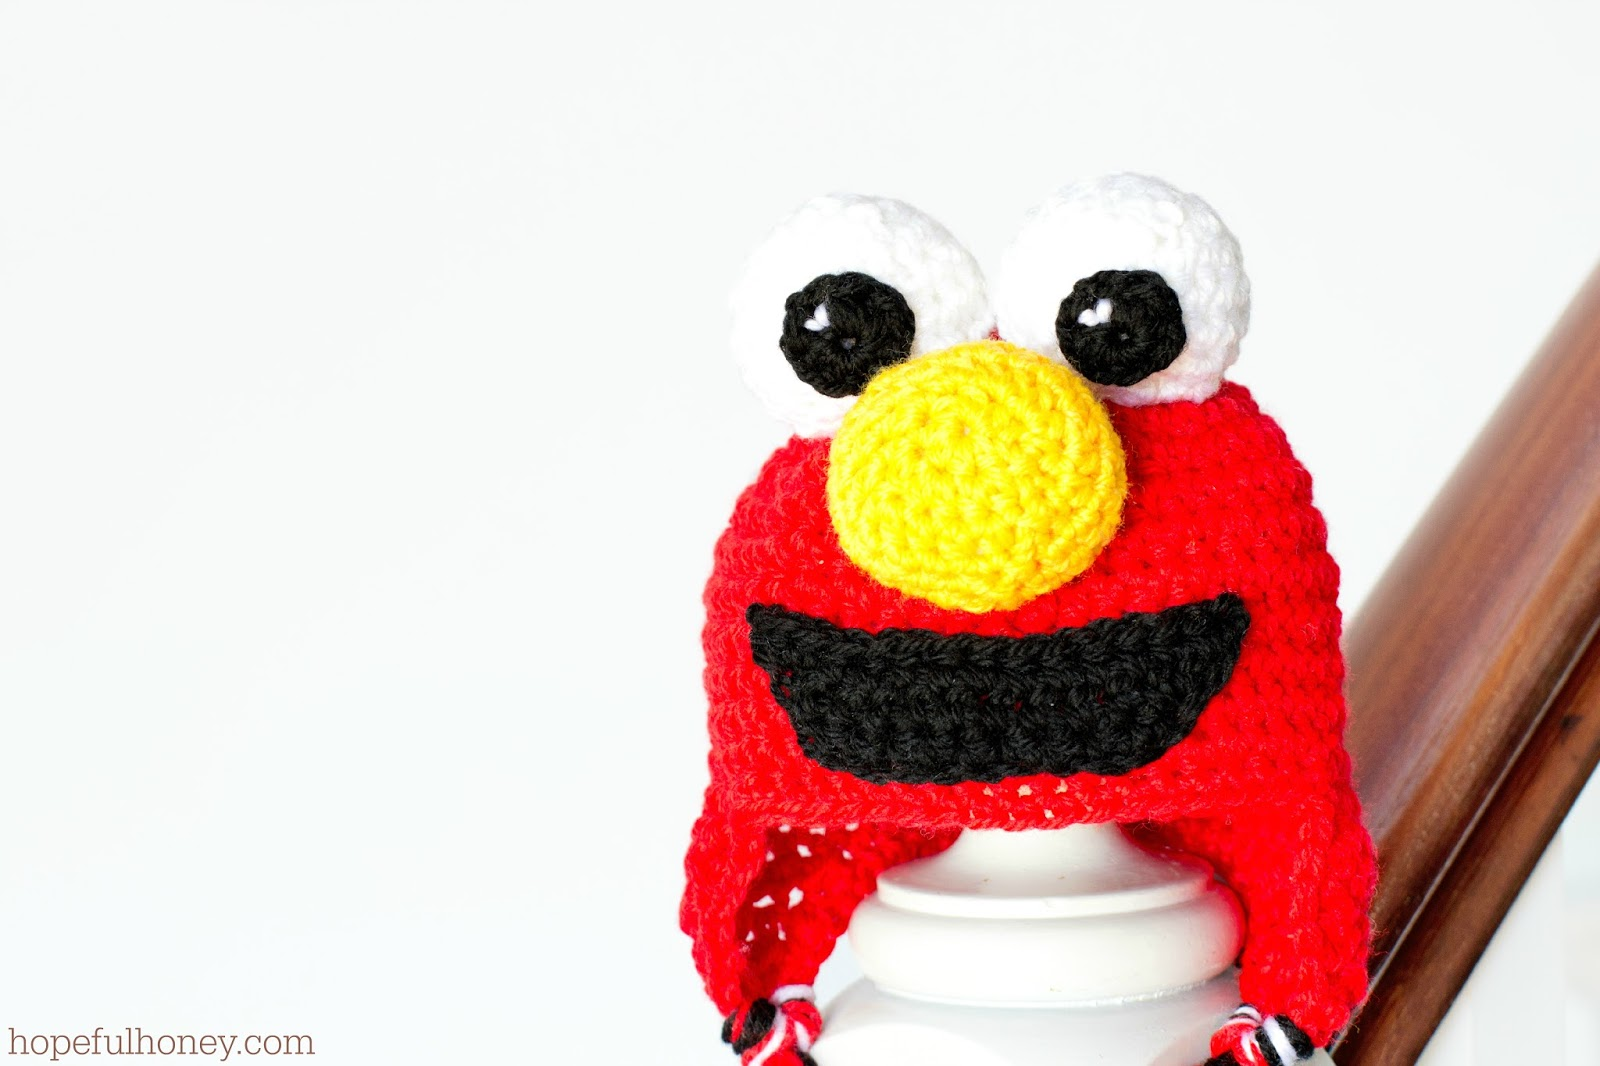 Elmo inspired baby hat pattern craftbnb hopeful honey craft crochet createsesame street elmo bankloansurffo Gallery